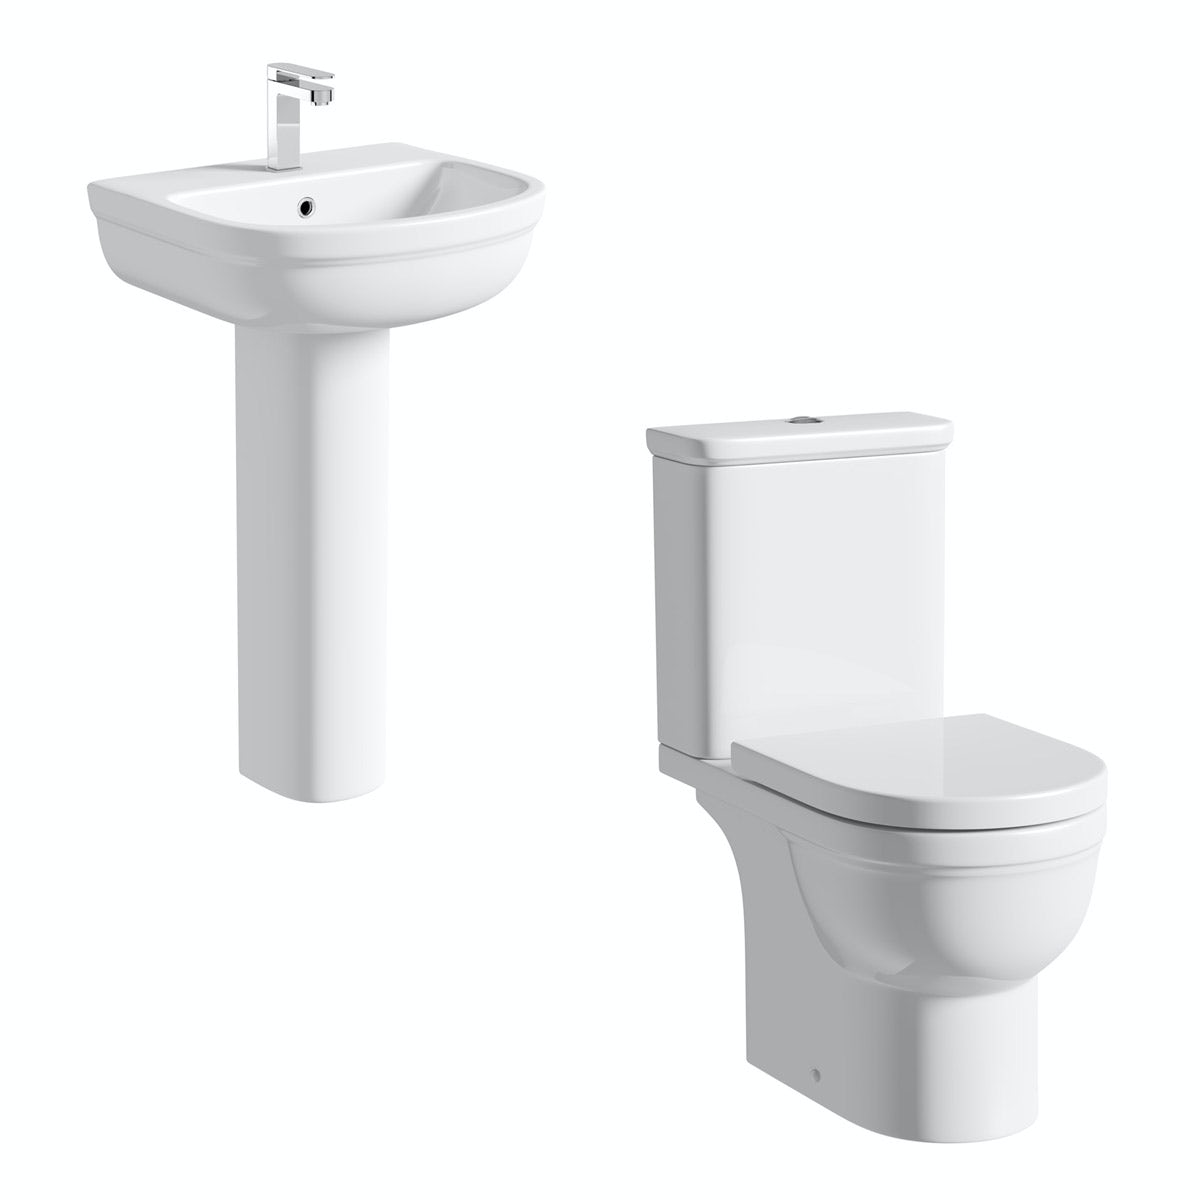 Deco Close Coupled Toilet and Full Pedestal Suite